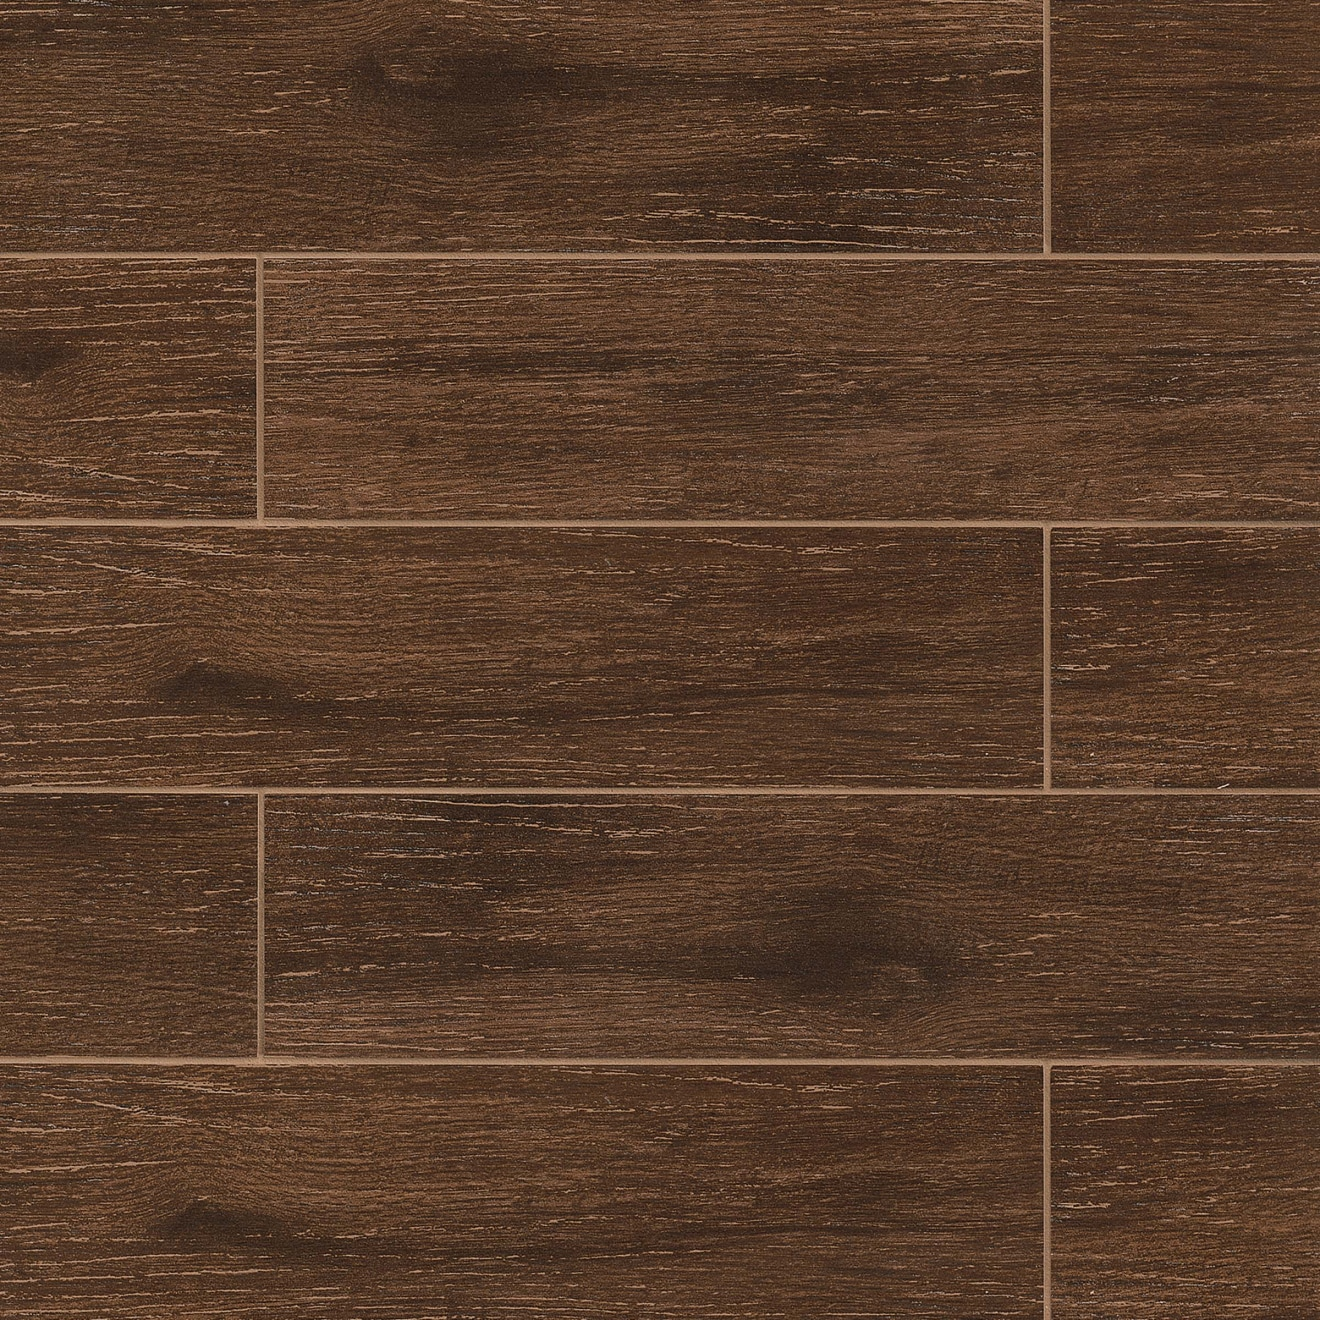 Prestige Collection 6 X 24 Floor Wall Tile In Walnut